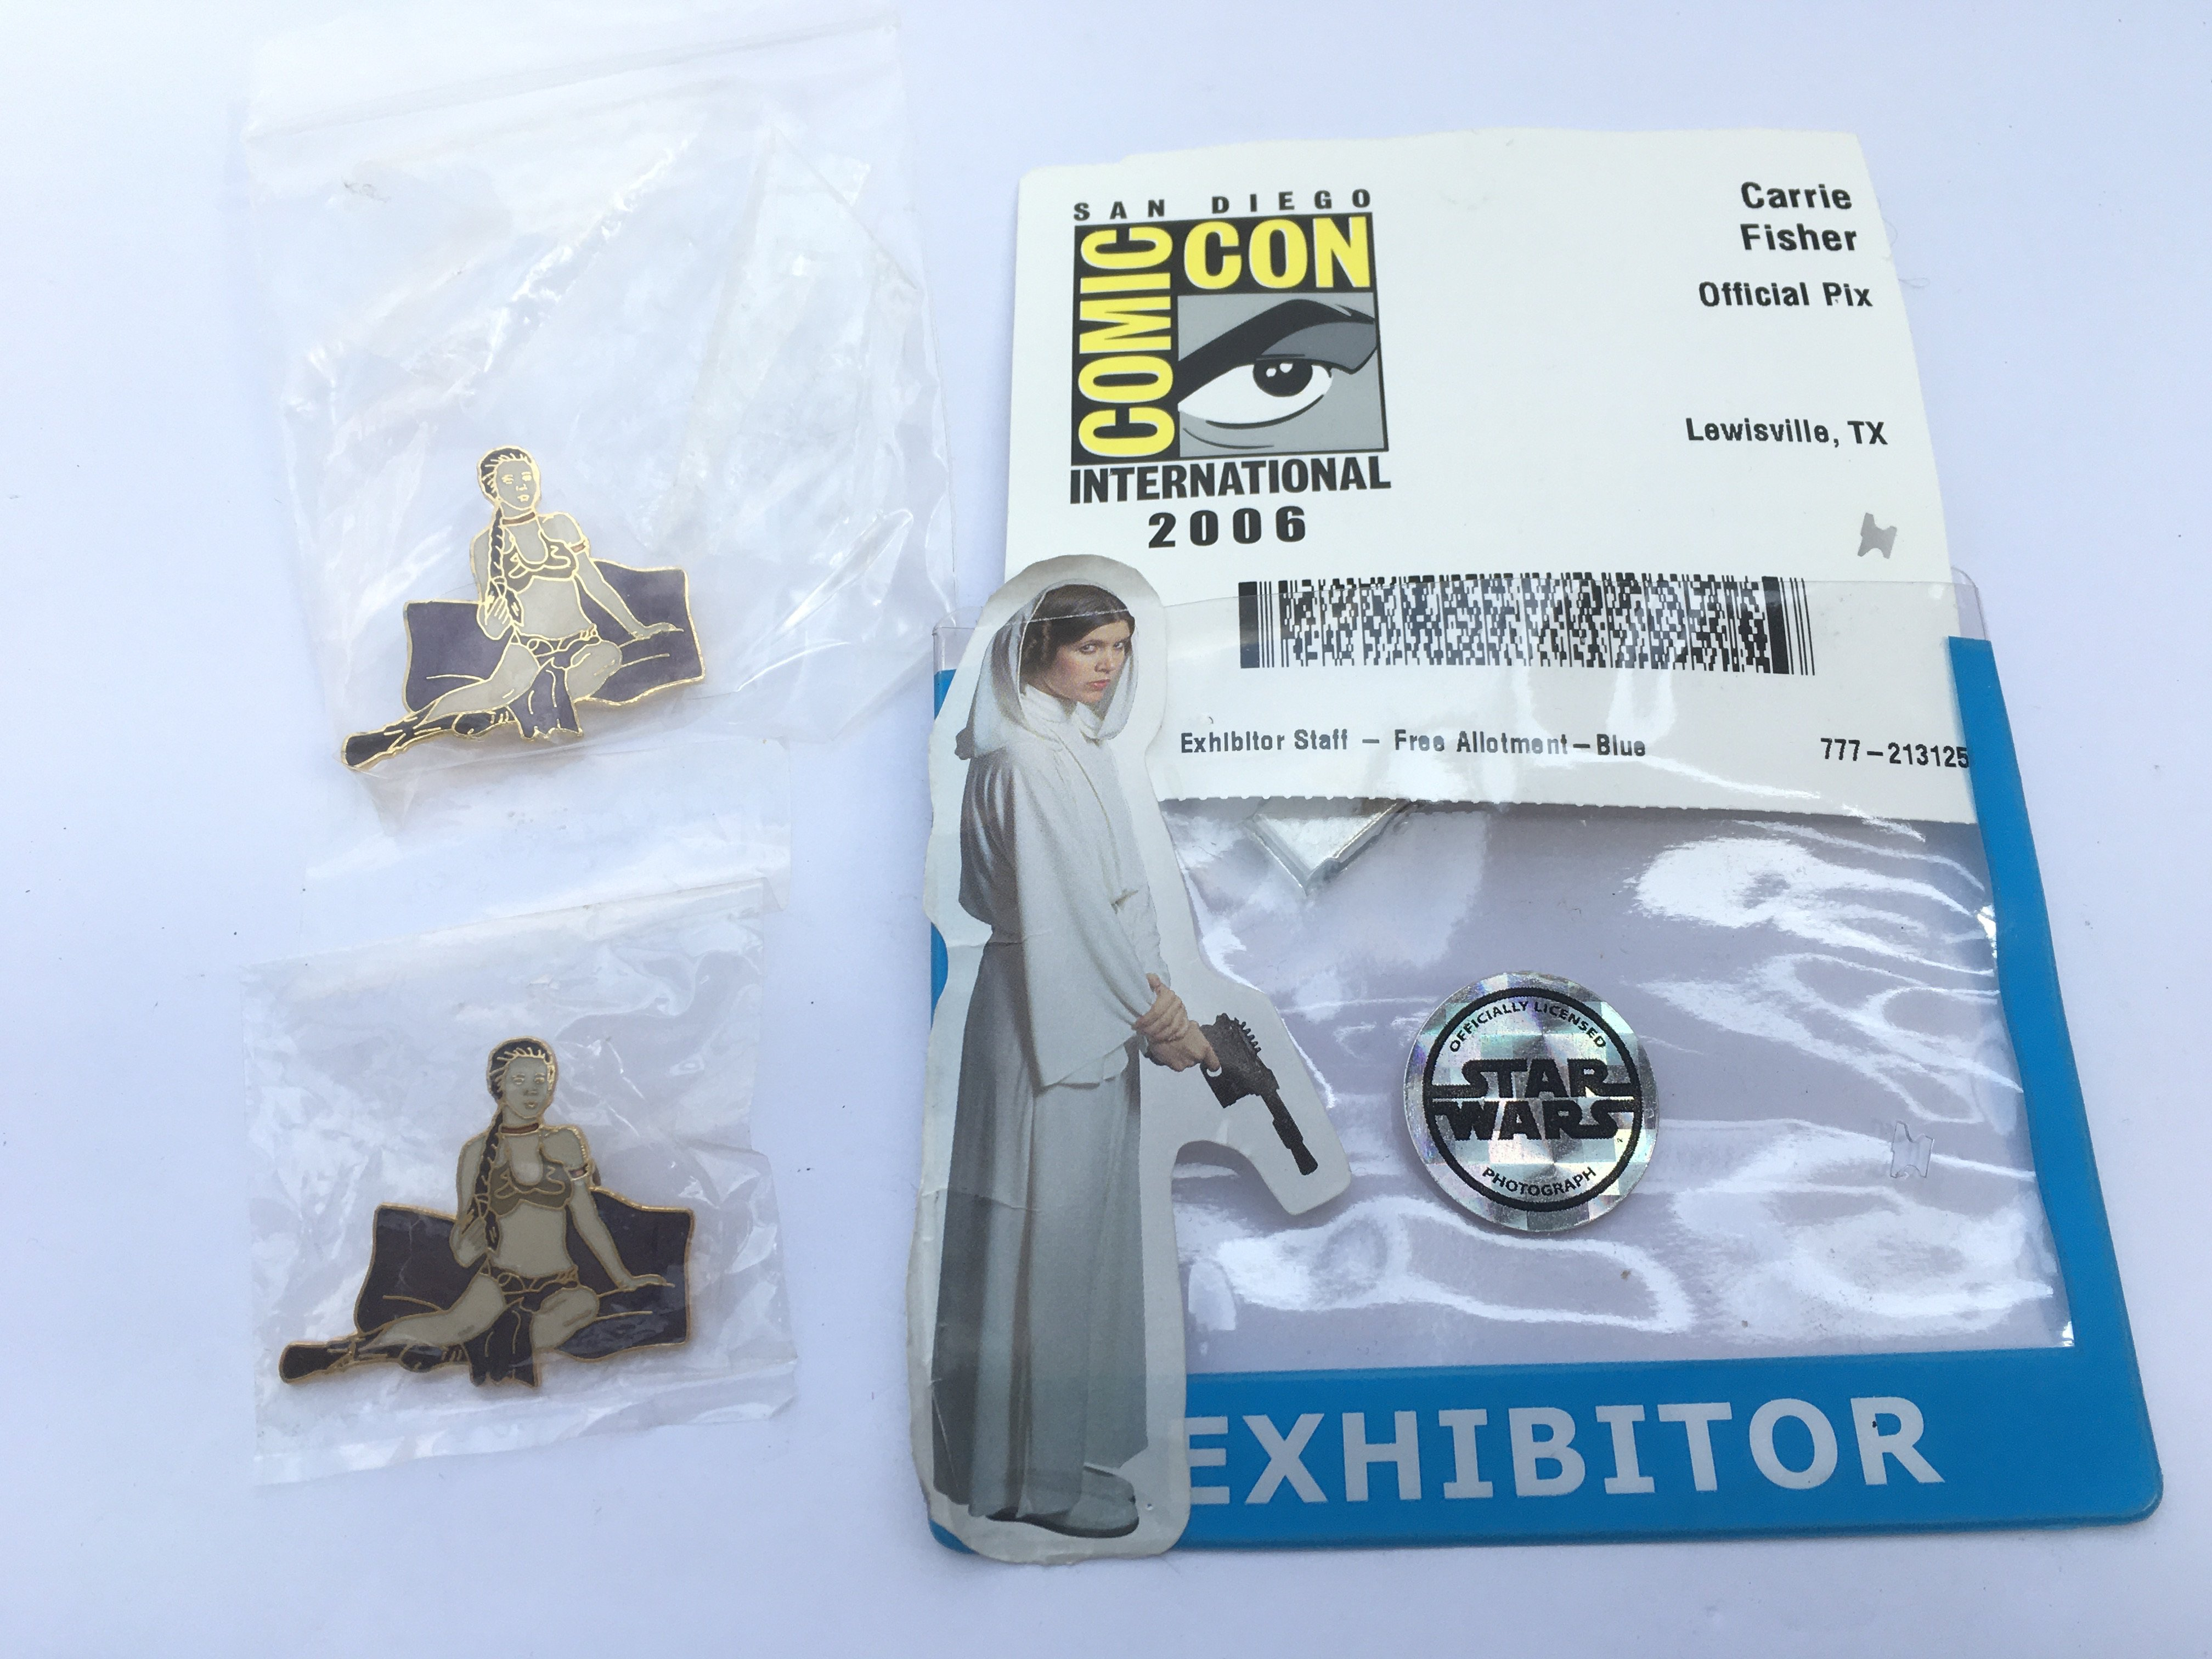 Carrie Fisher's Star Wars exhibitor pass at the 20